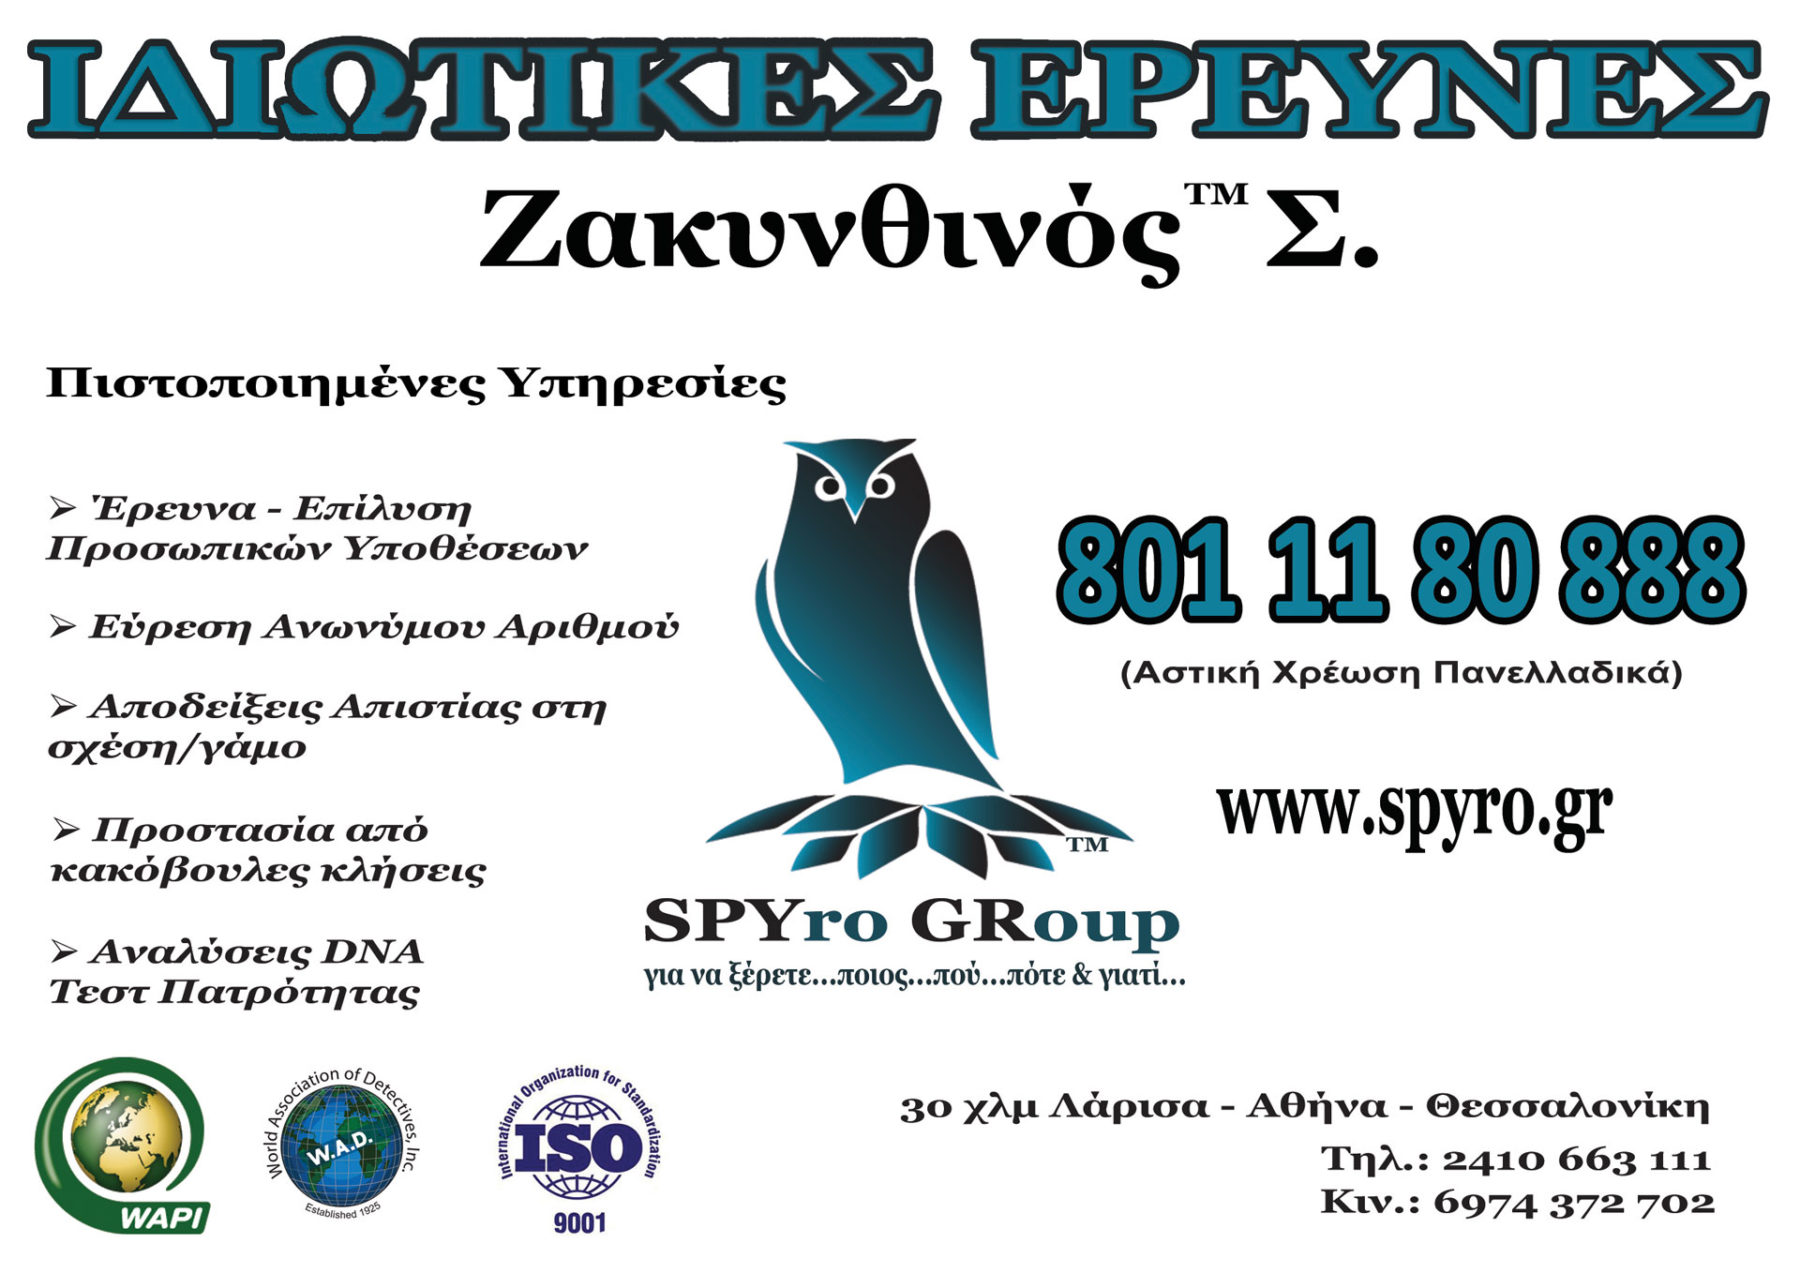 Spyro Group